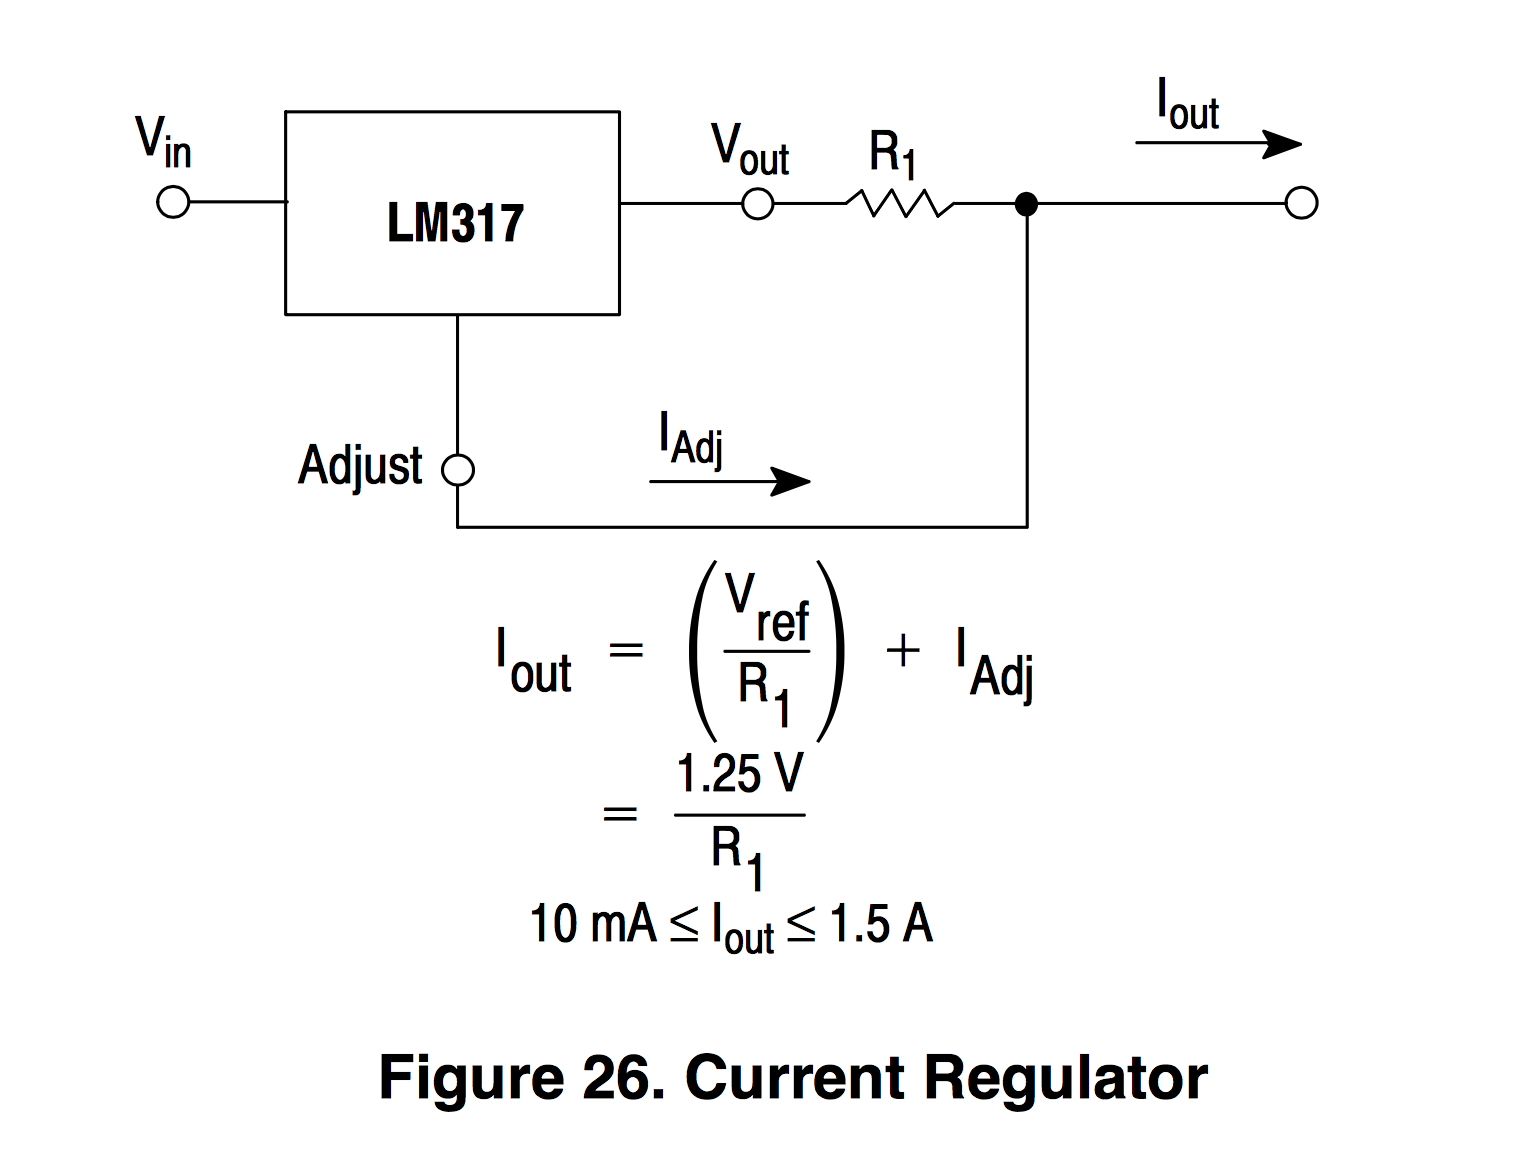 Voltage Regulators Revisted Lm317m 7812 Mcp170x Mic5219 And Icl7660 Miniature Motor Controller By Lm317 Electronic Projects Circuits This Current Regulator Circuit Is Even Simpler Than Using The As A Which Requires Two Resistors To Create Divider